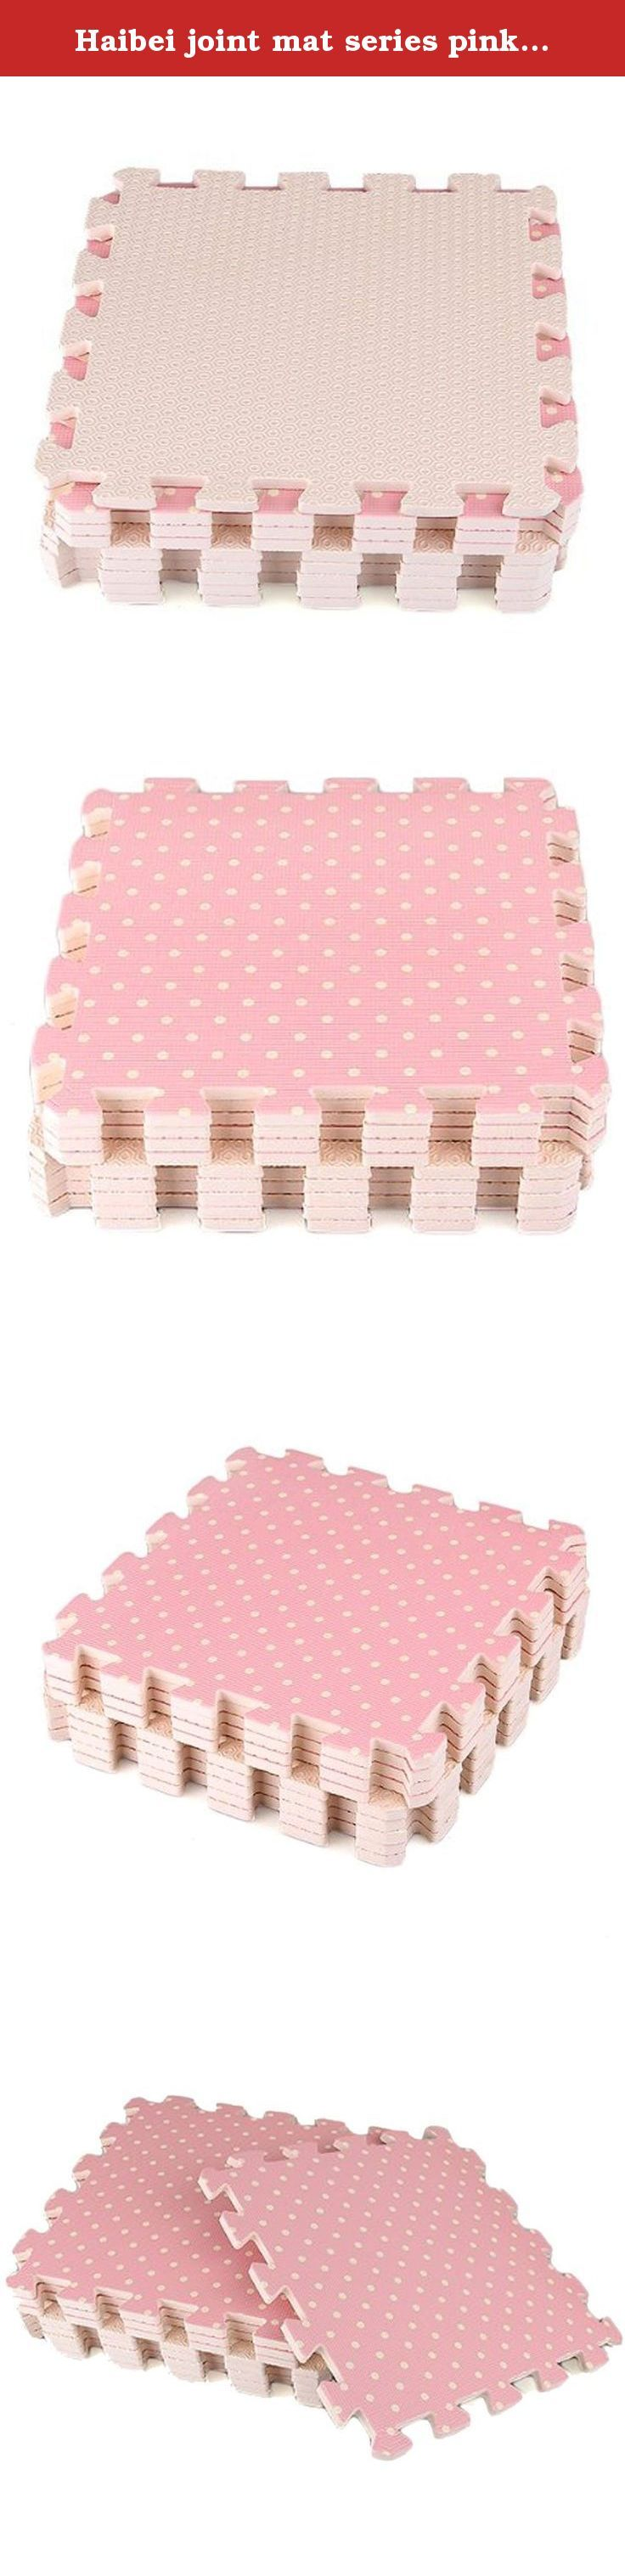 """Haibei joint mat series pink 9 pieces set 30 ~ 30 ƒZƒ""""ƒ` ƒ[ƒgƒ‹ corresponding to your child's play. Size: 30cm * 30cm * 1cm Material: EVA resin Contents: 9 pieces Soundproof effect and shock absorbing effect because it uses a soft material is preeminent. It offers a play place fun to children. > More."""